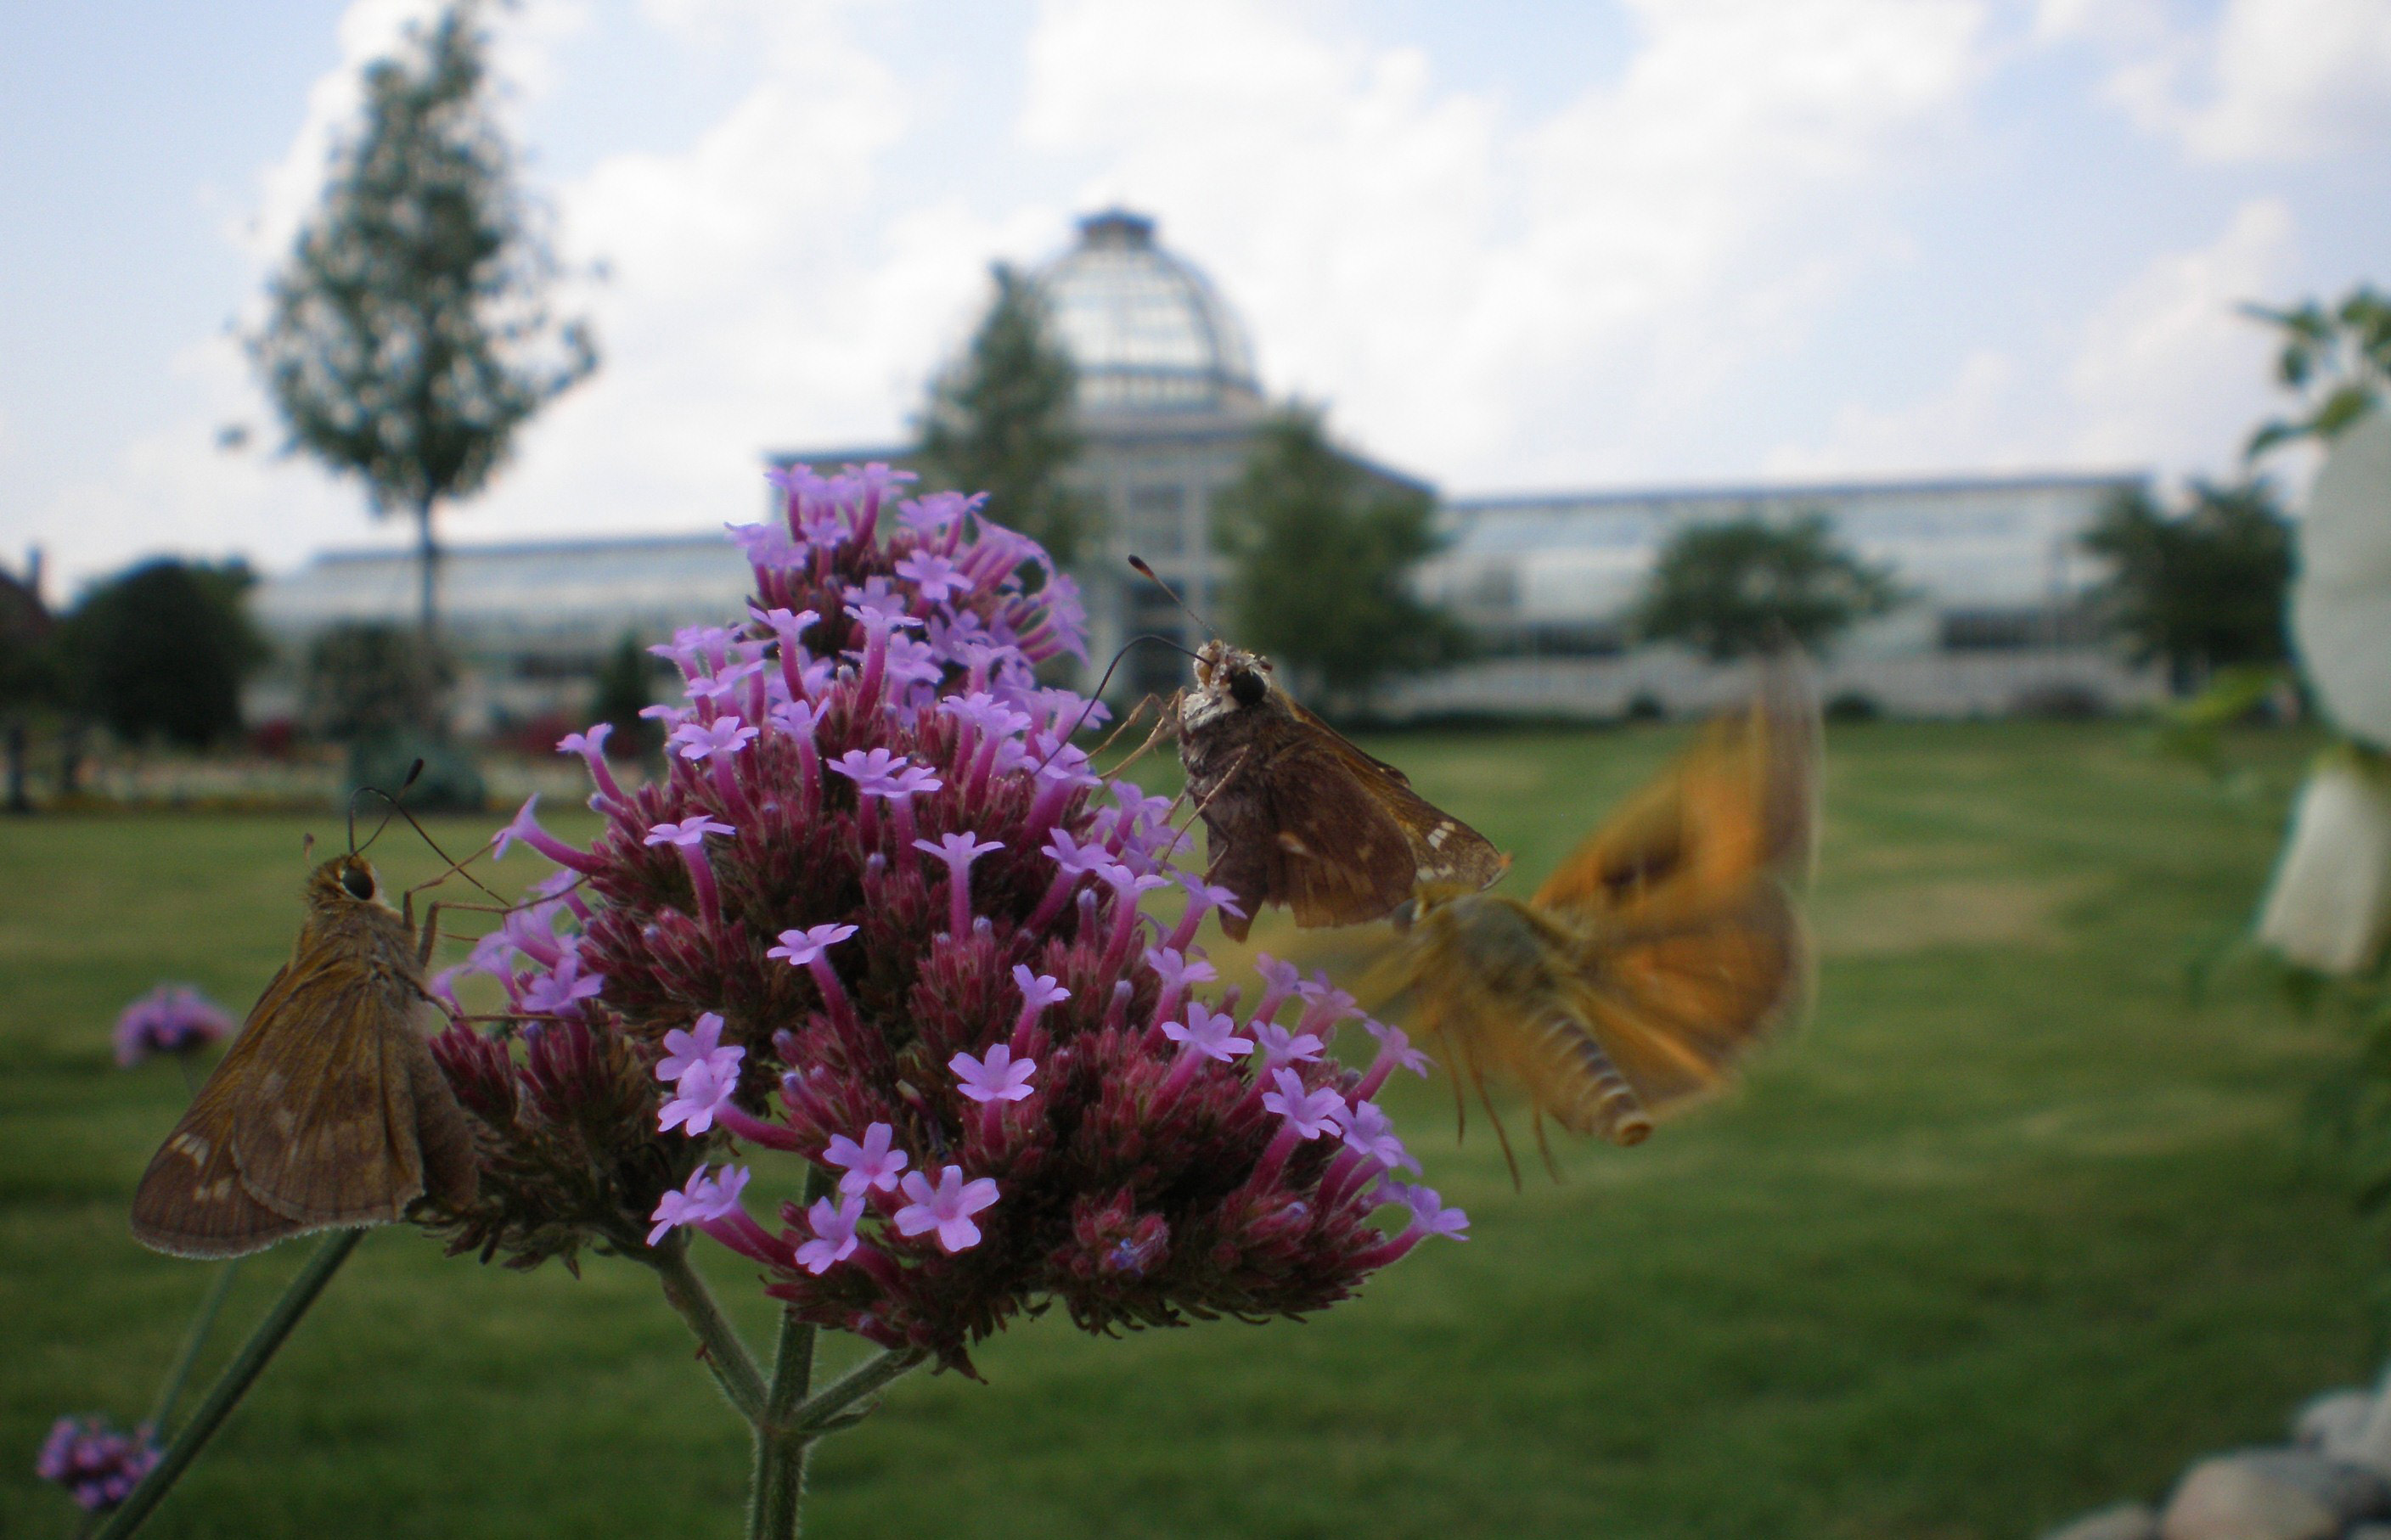 Lewis Ginter Hours And Admission Prices For Lewis Ginter Botanical Garden